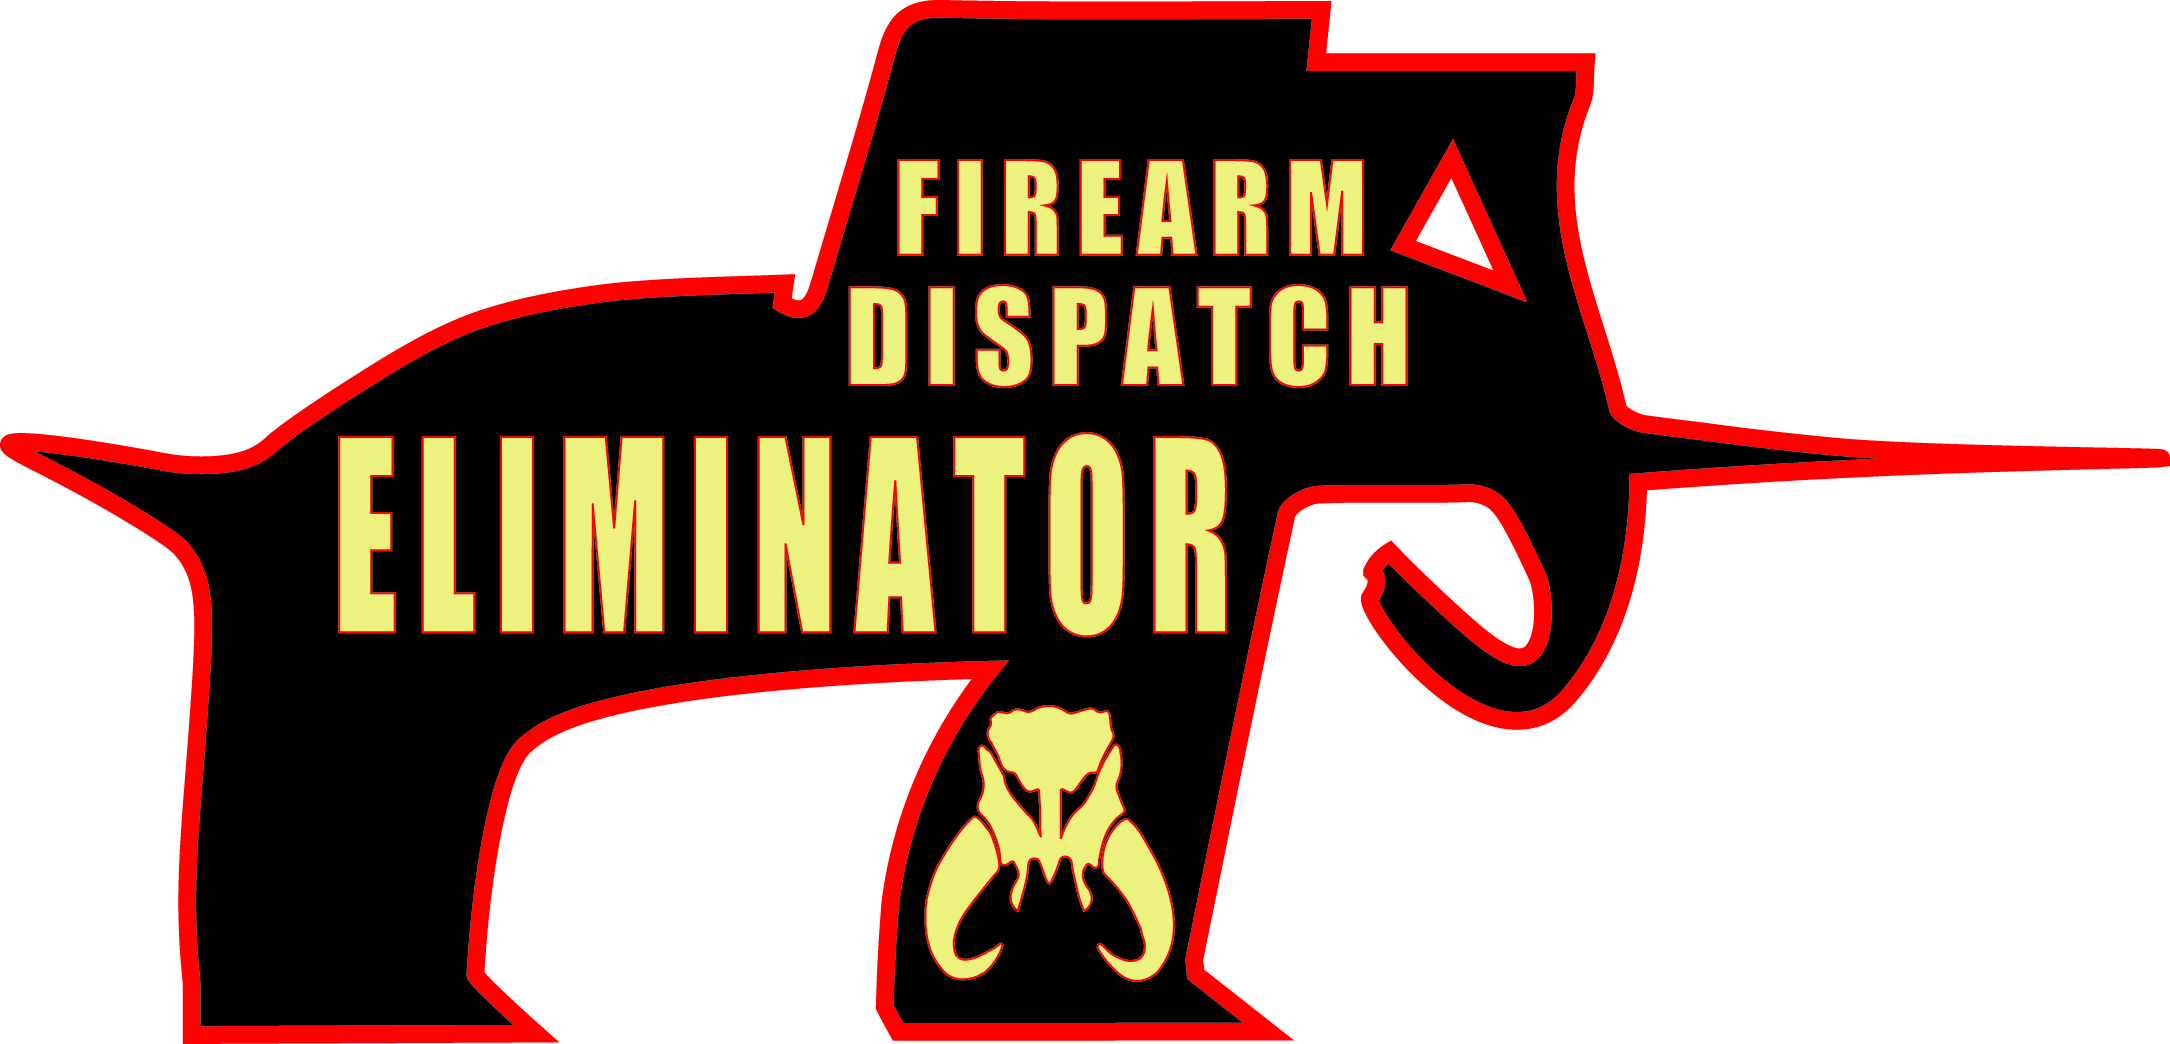 firearm-dispatch-eliminators.jpg